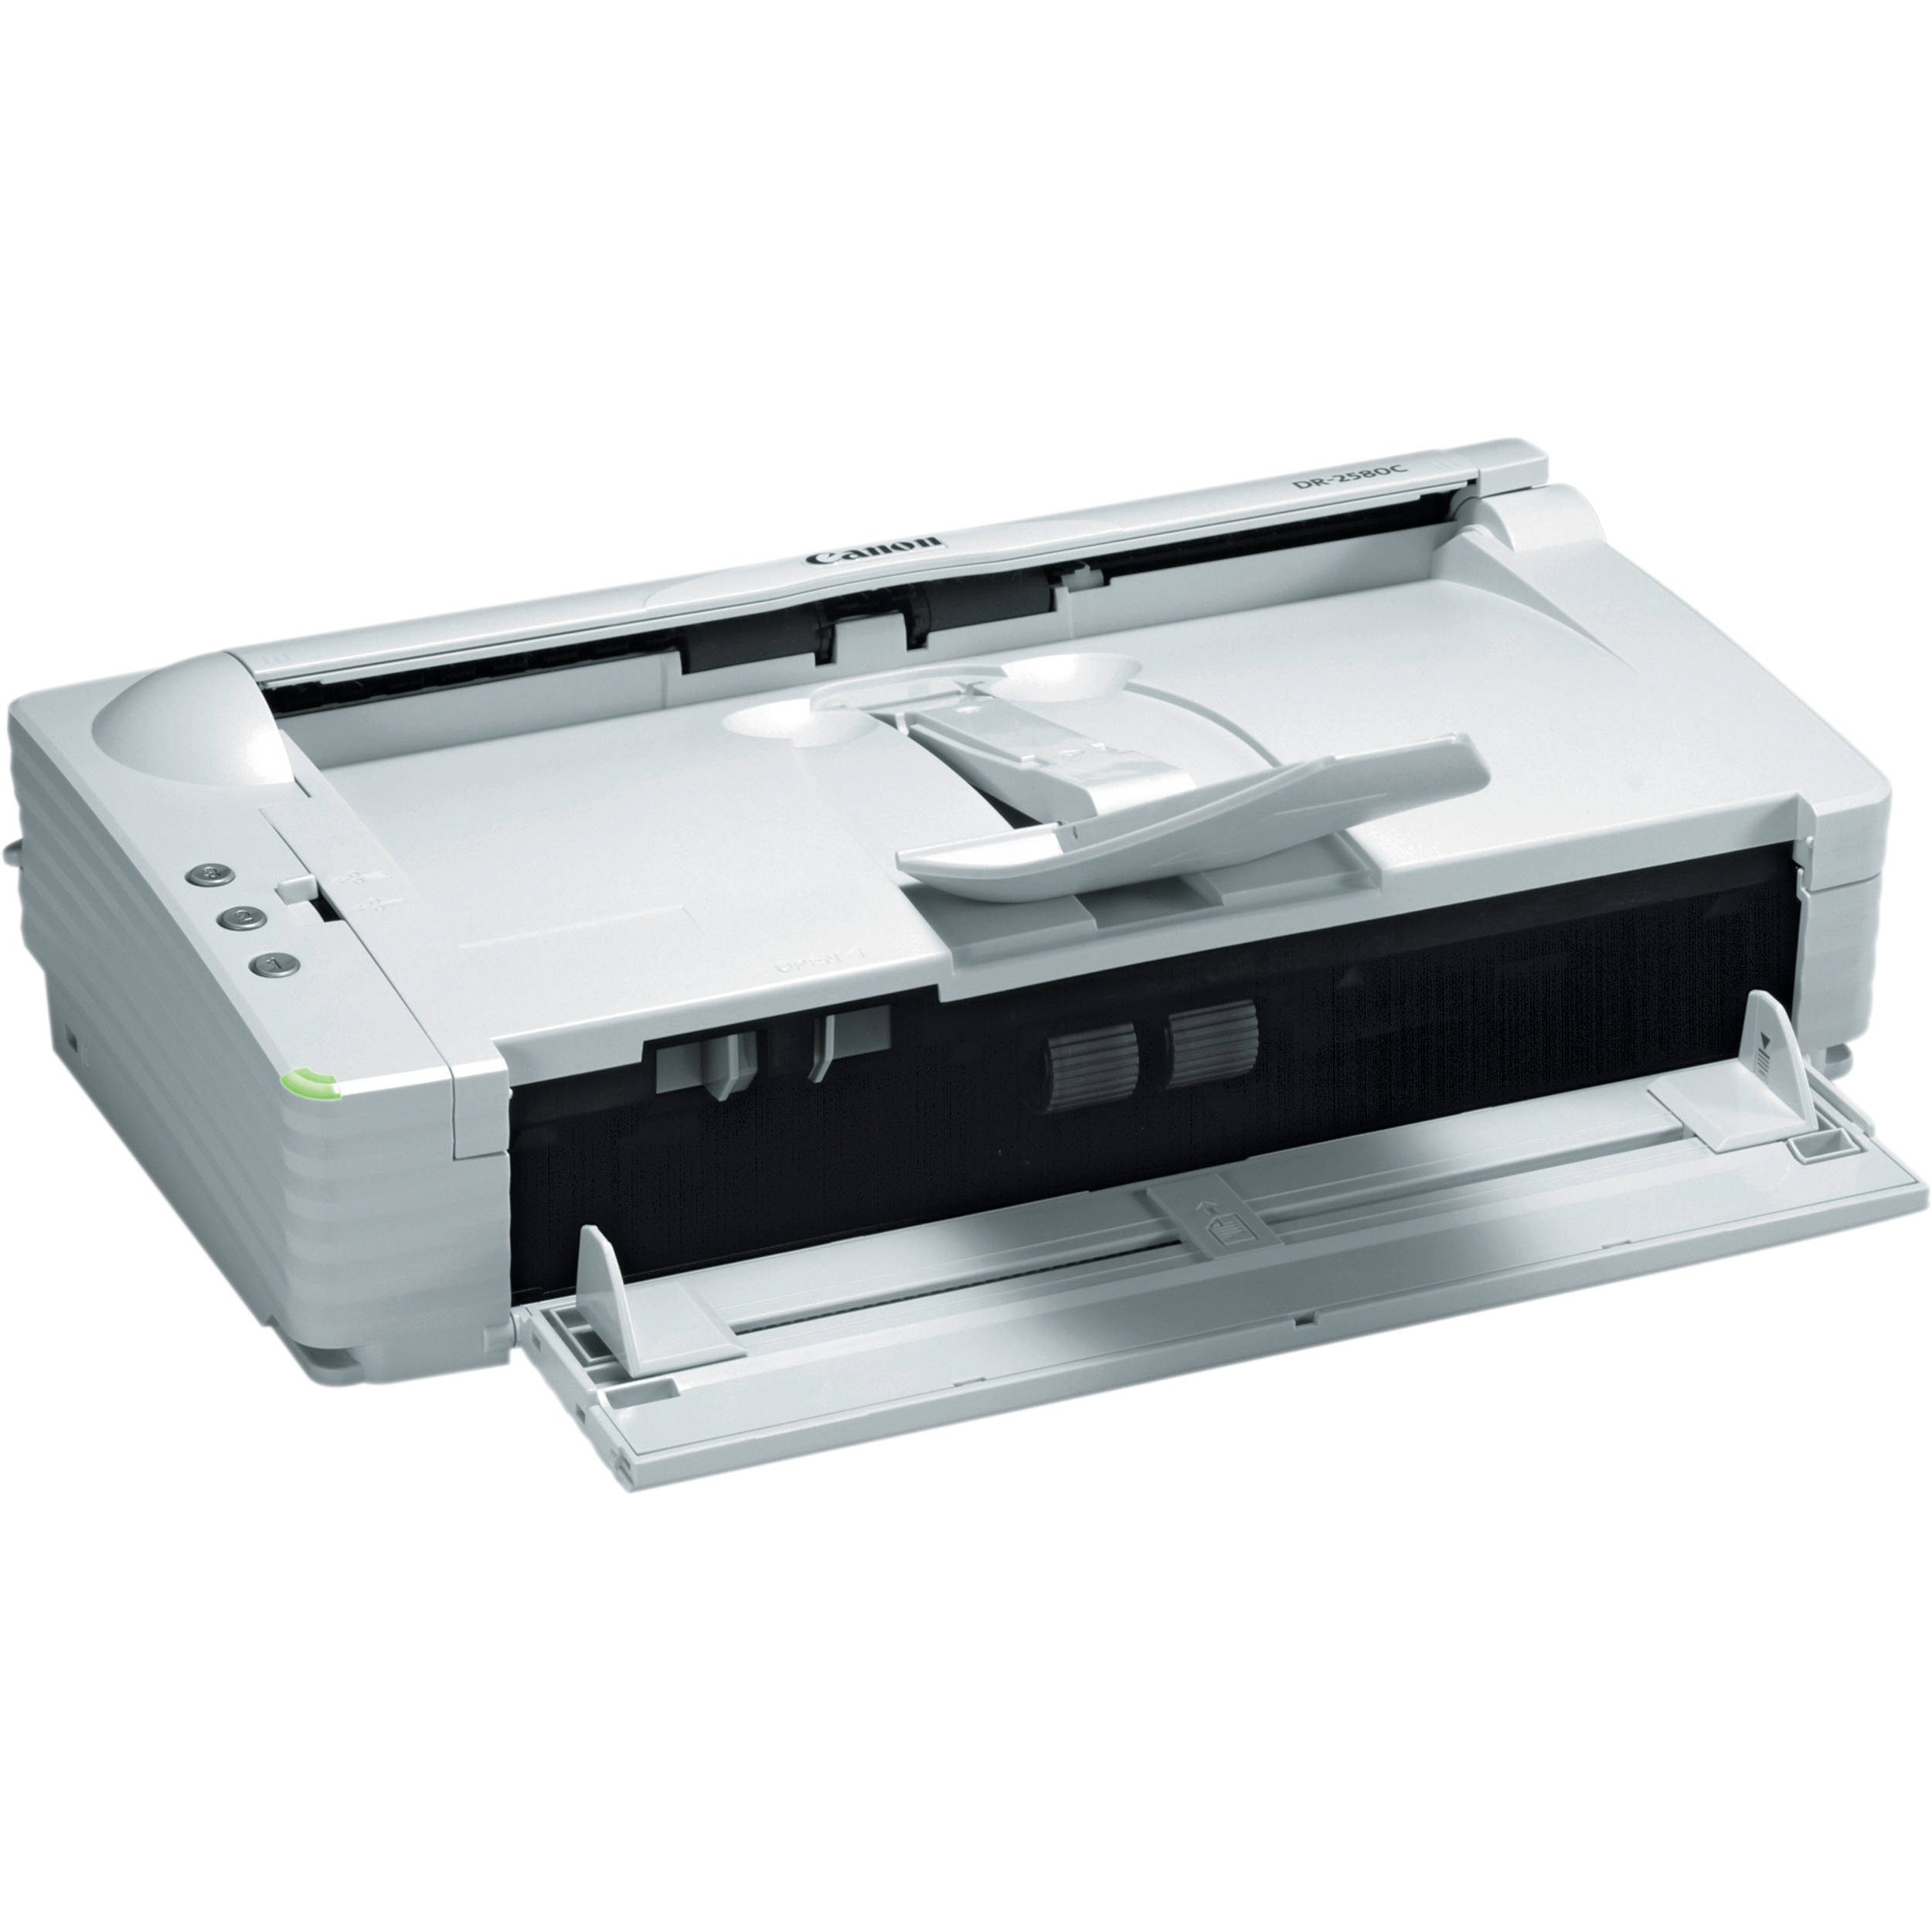 CANON DR 2580C DRIVERS FOR WINDOWS XP